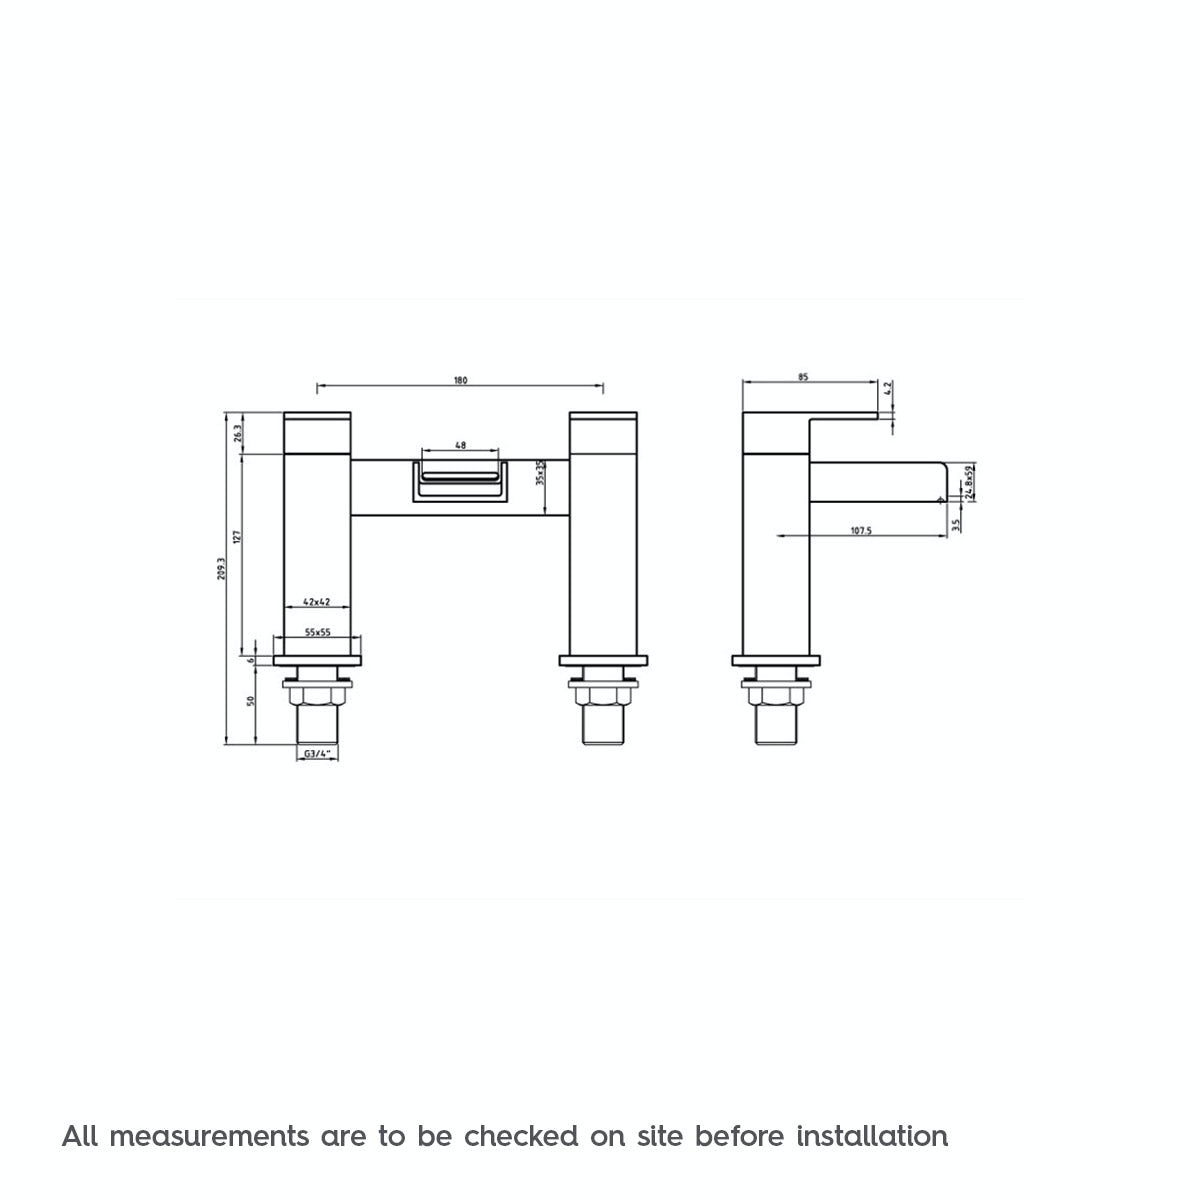 Dimensions for Mode Carter waterfall bath mixer tap